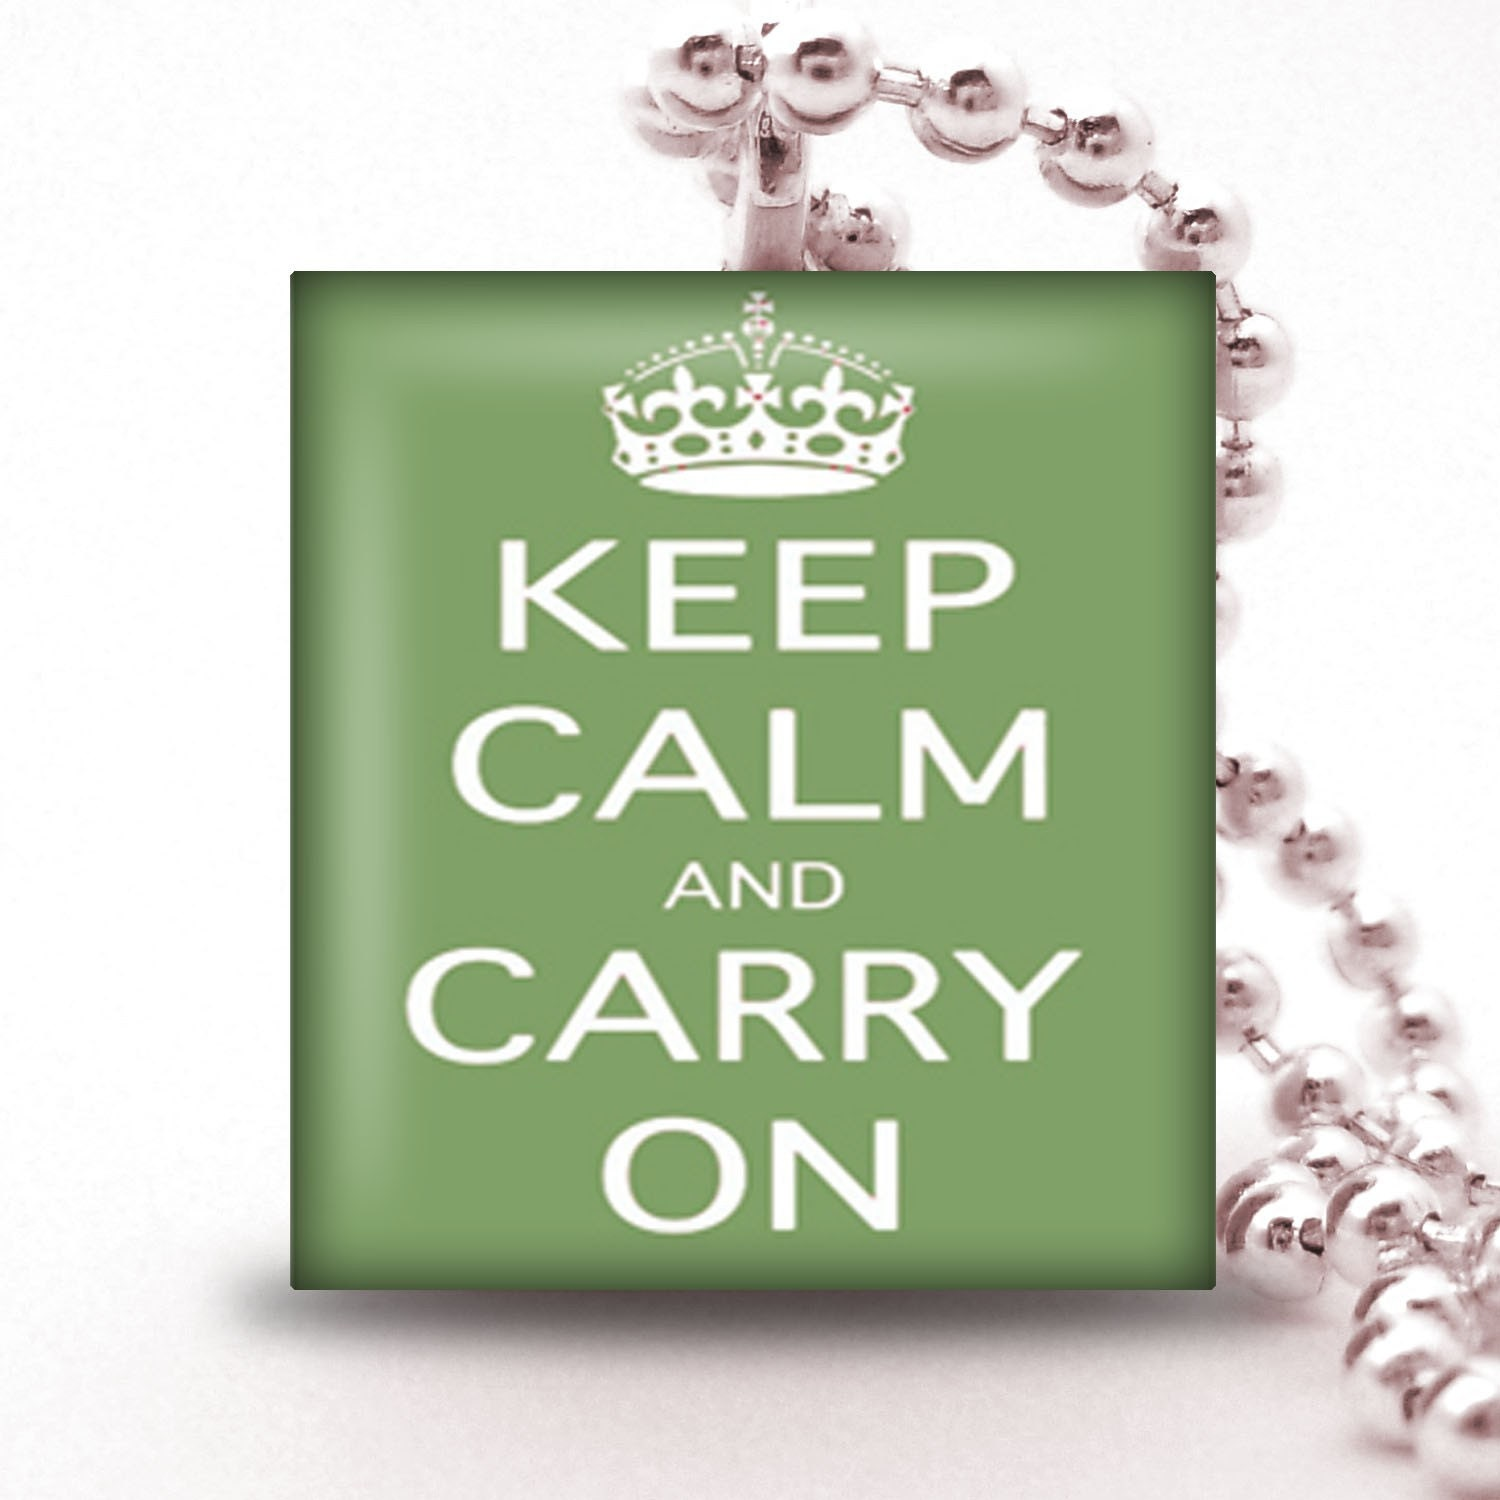 Scrabble Tile Pendant   - KEEP CALM AND CARRY ON IN SAGE GREEN - Buy 2 Pendants Get 1 Free